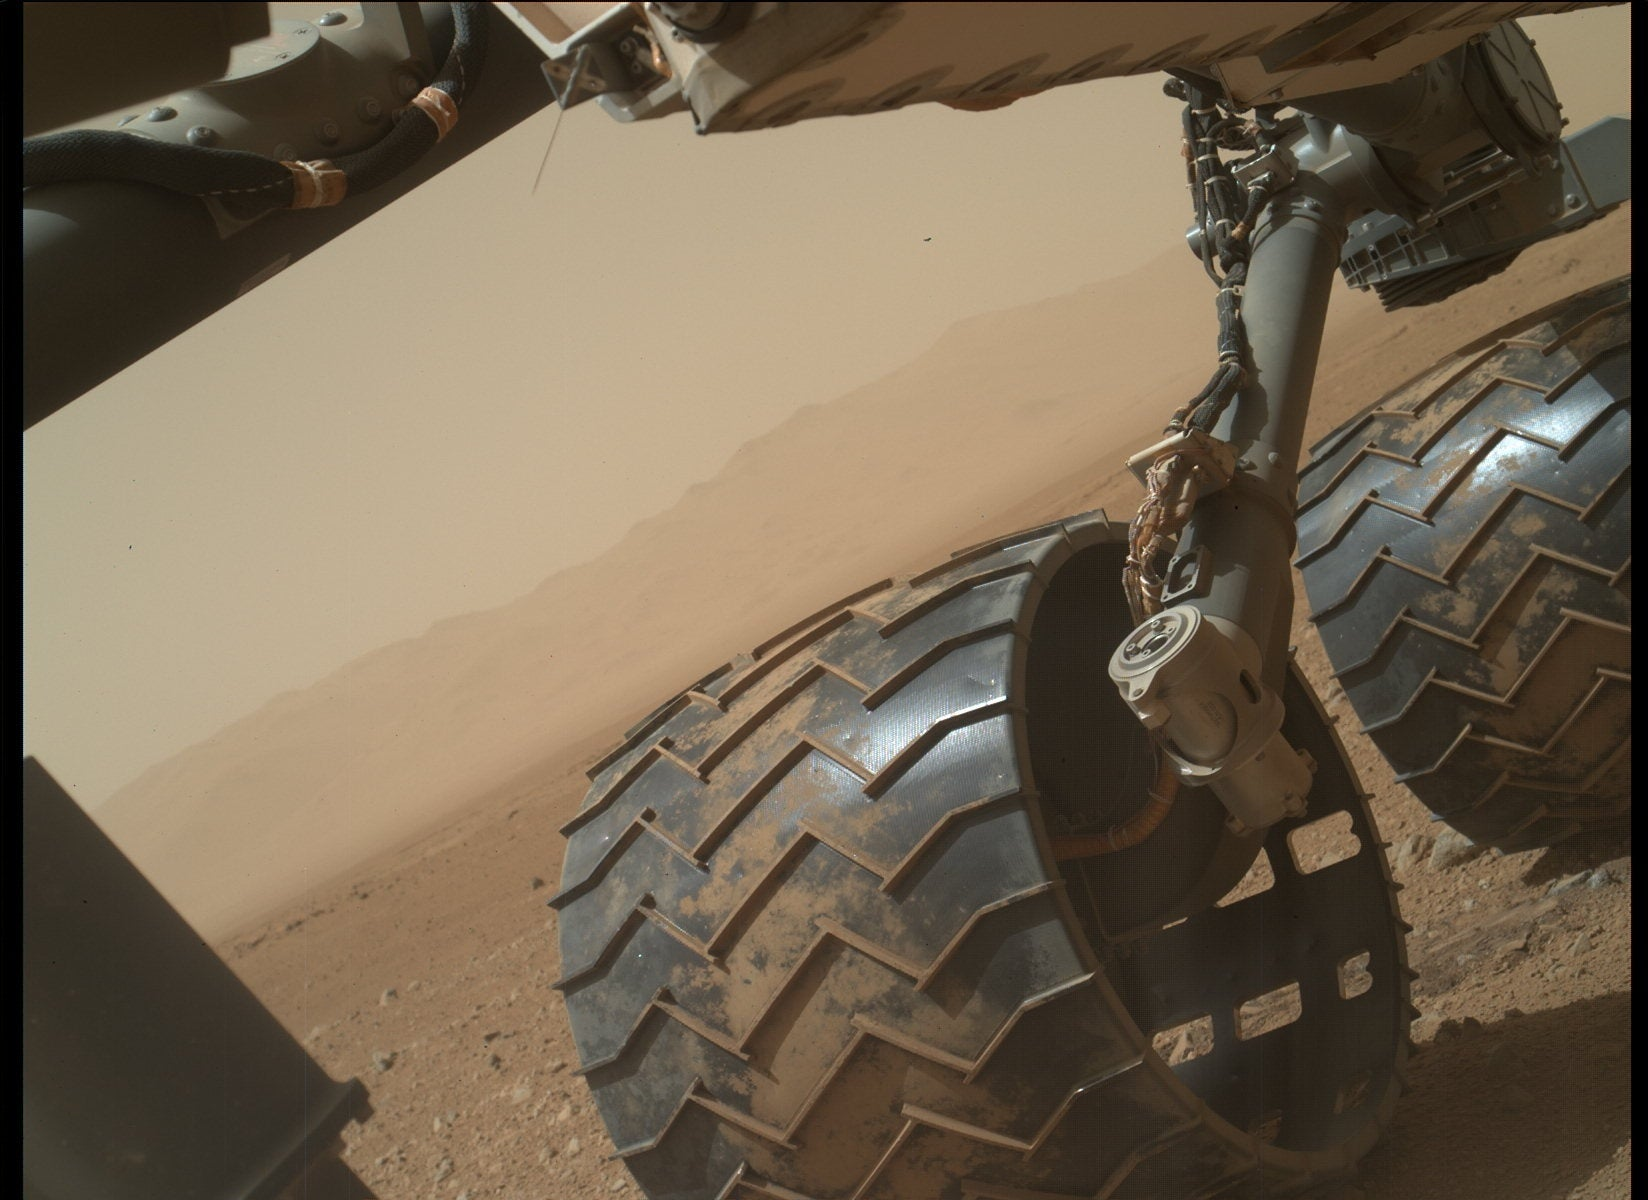 Today on Mars: Nice Undercarriage